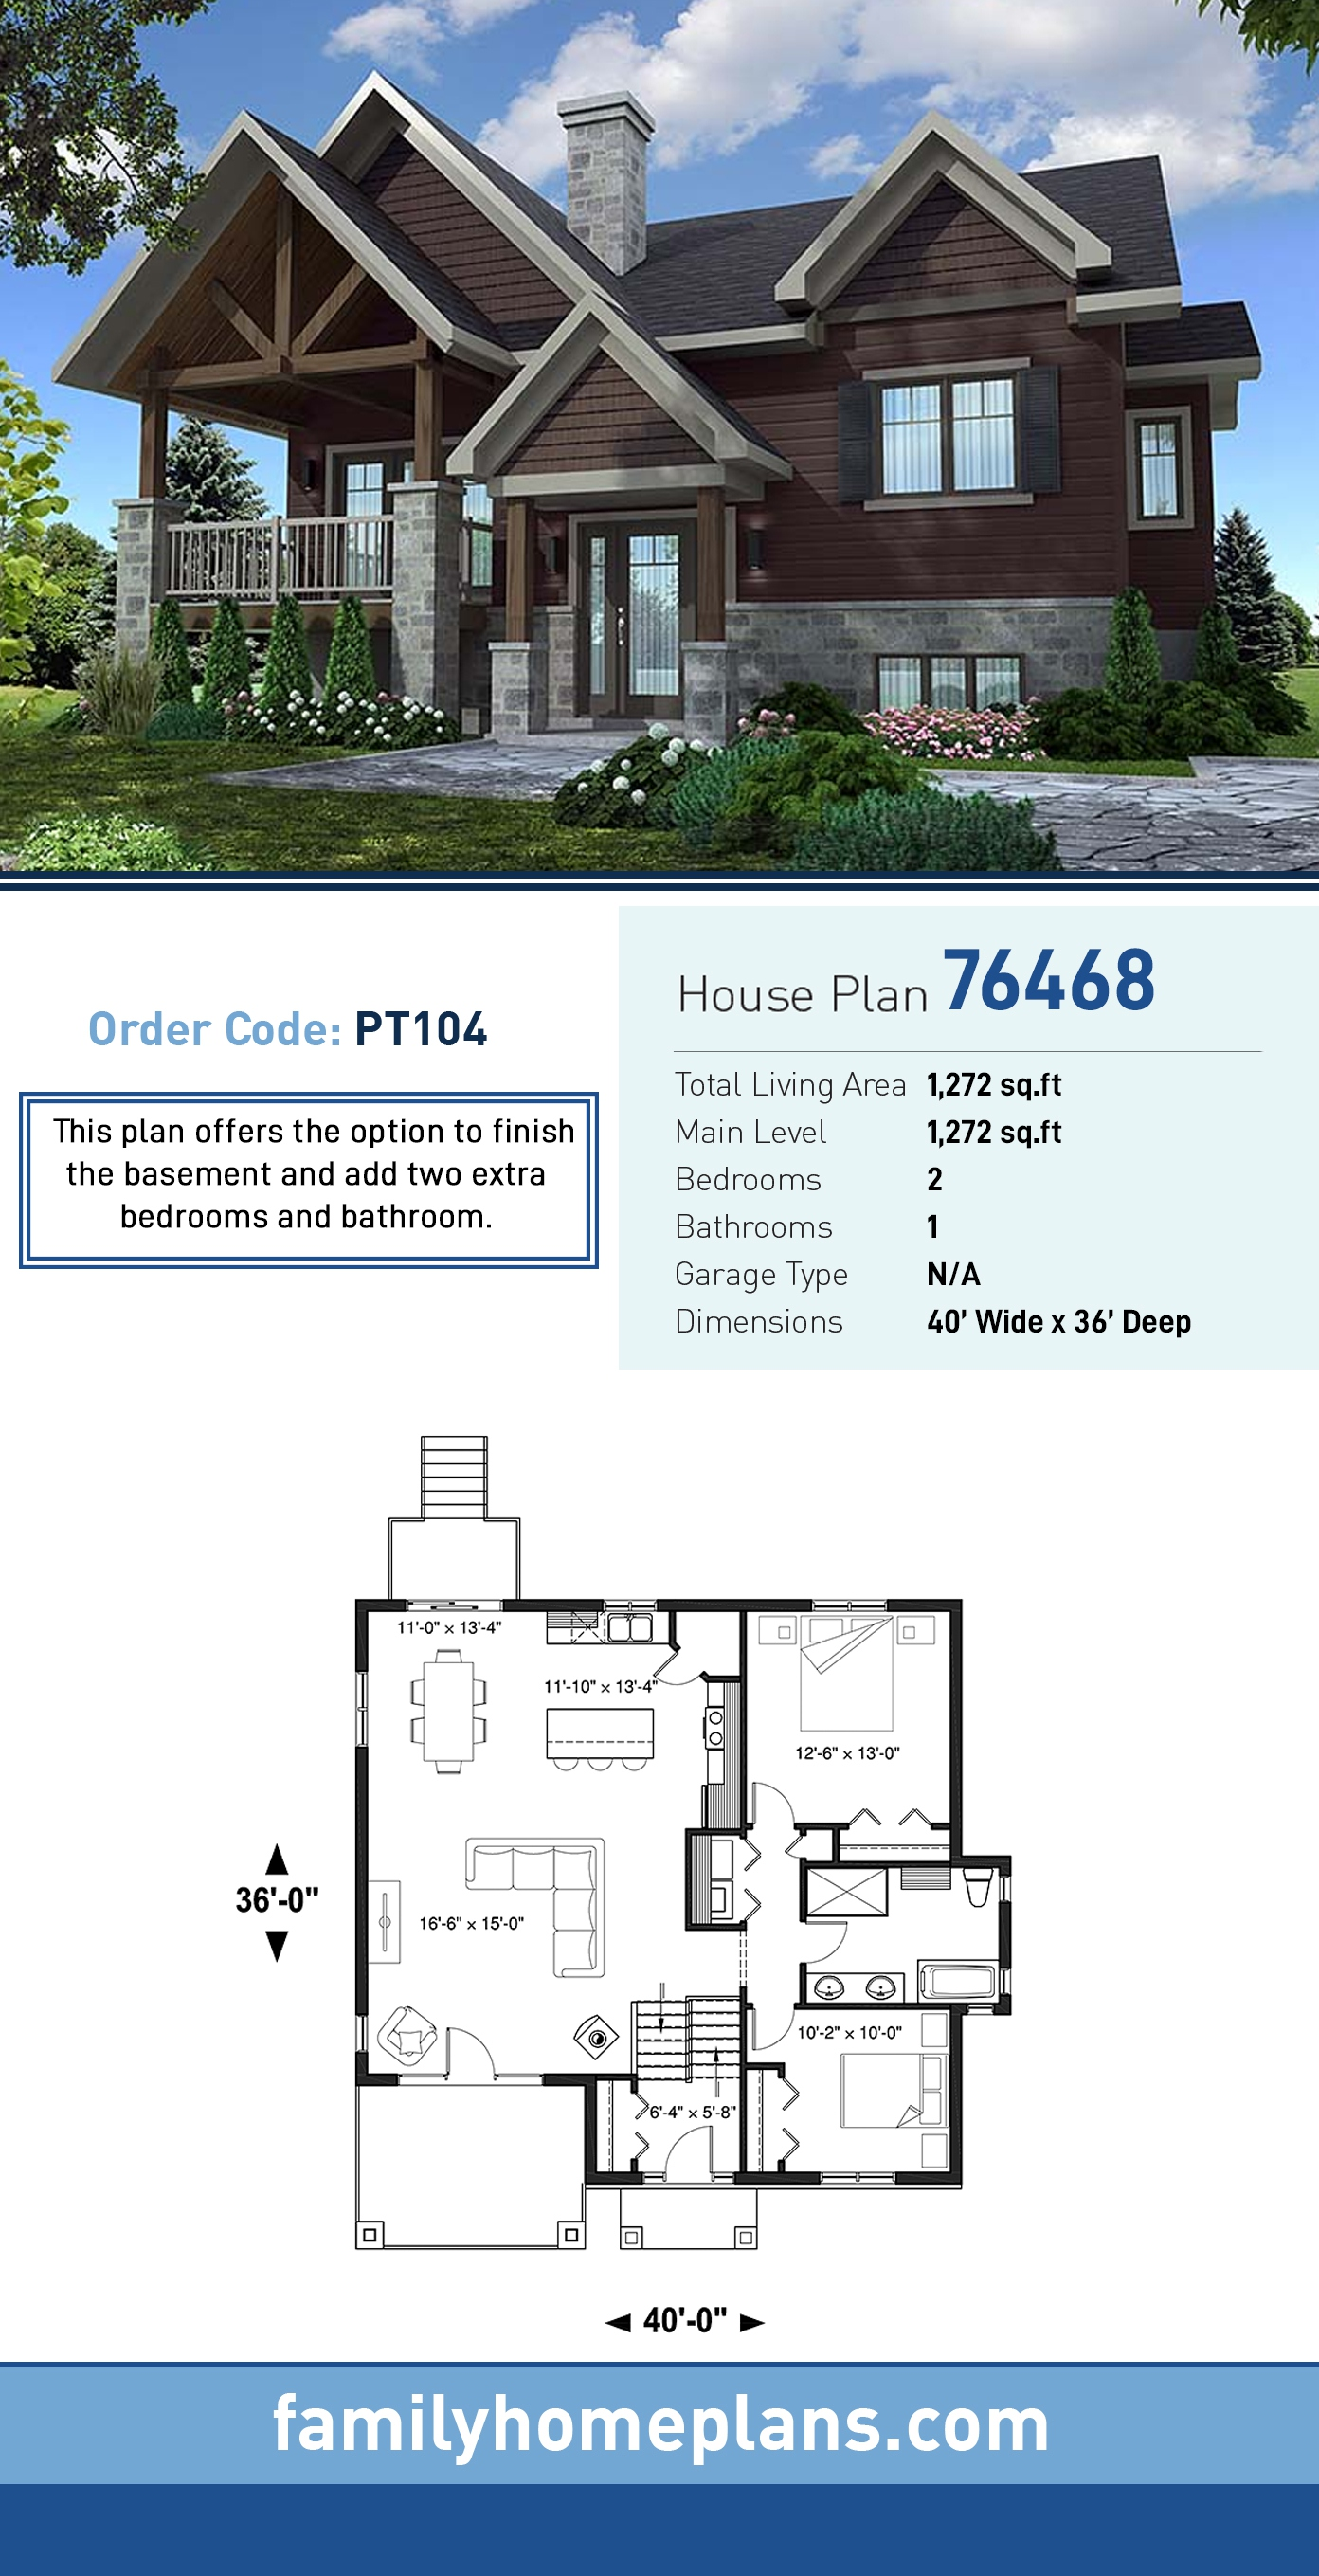 Contemporary, Country, Craftsman House Plan 76468 with 2 Beds, 1 Baths